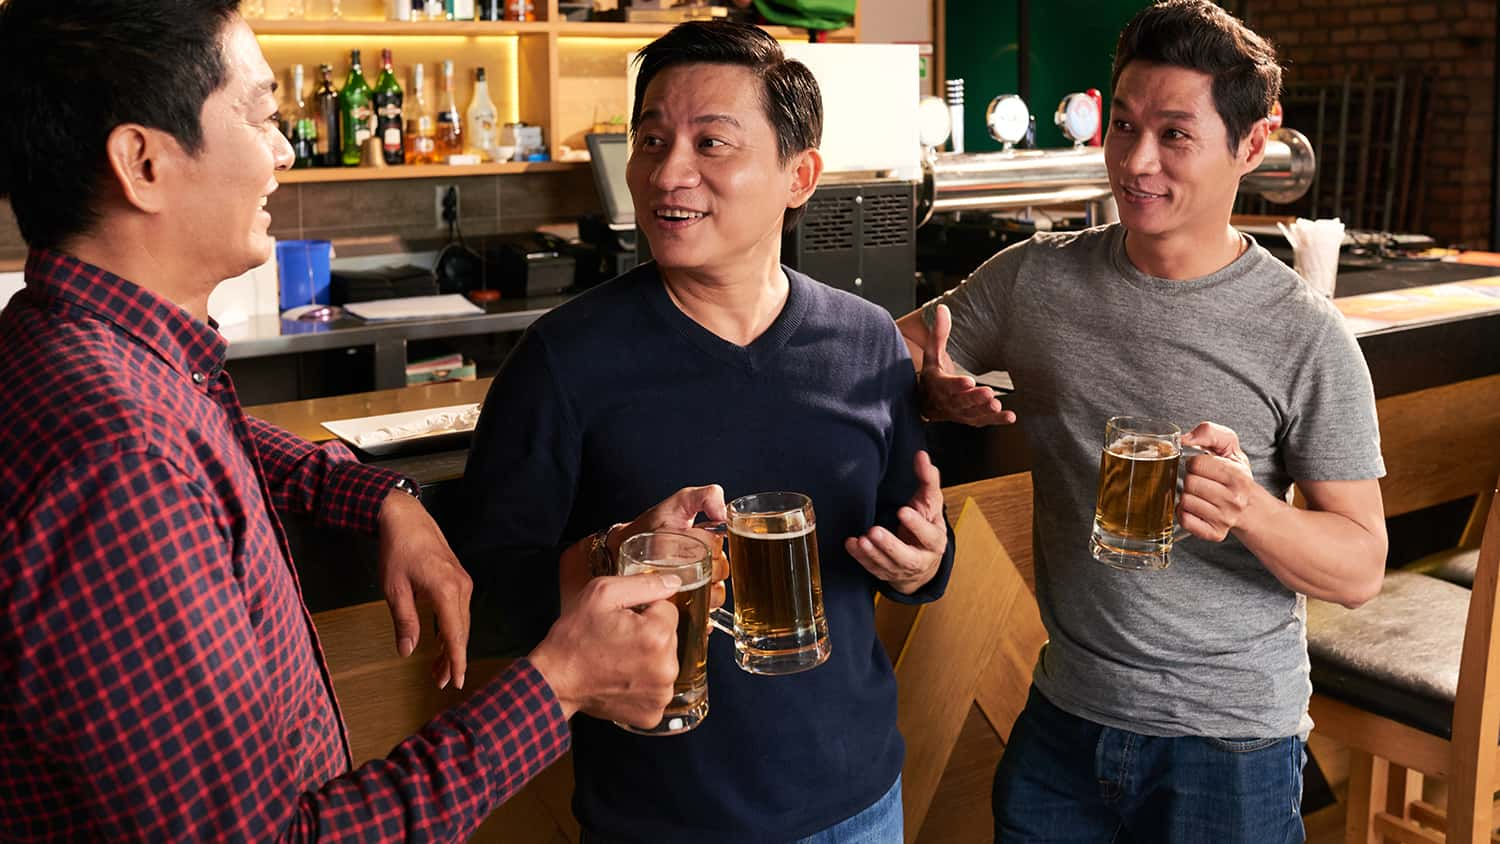 Three men drinking beer and talking at a brewery